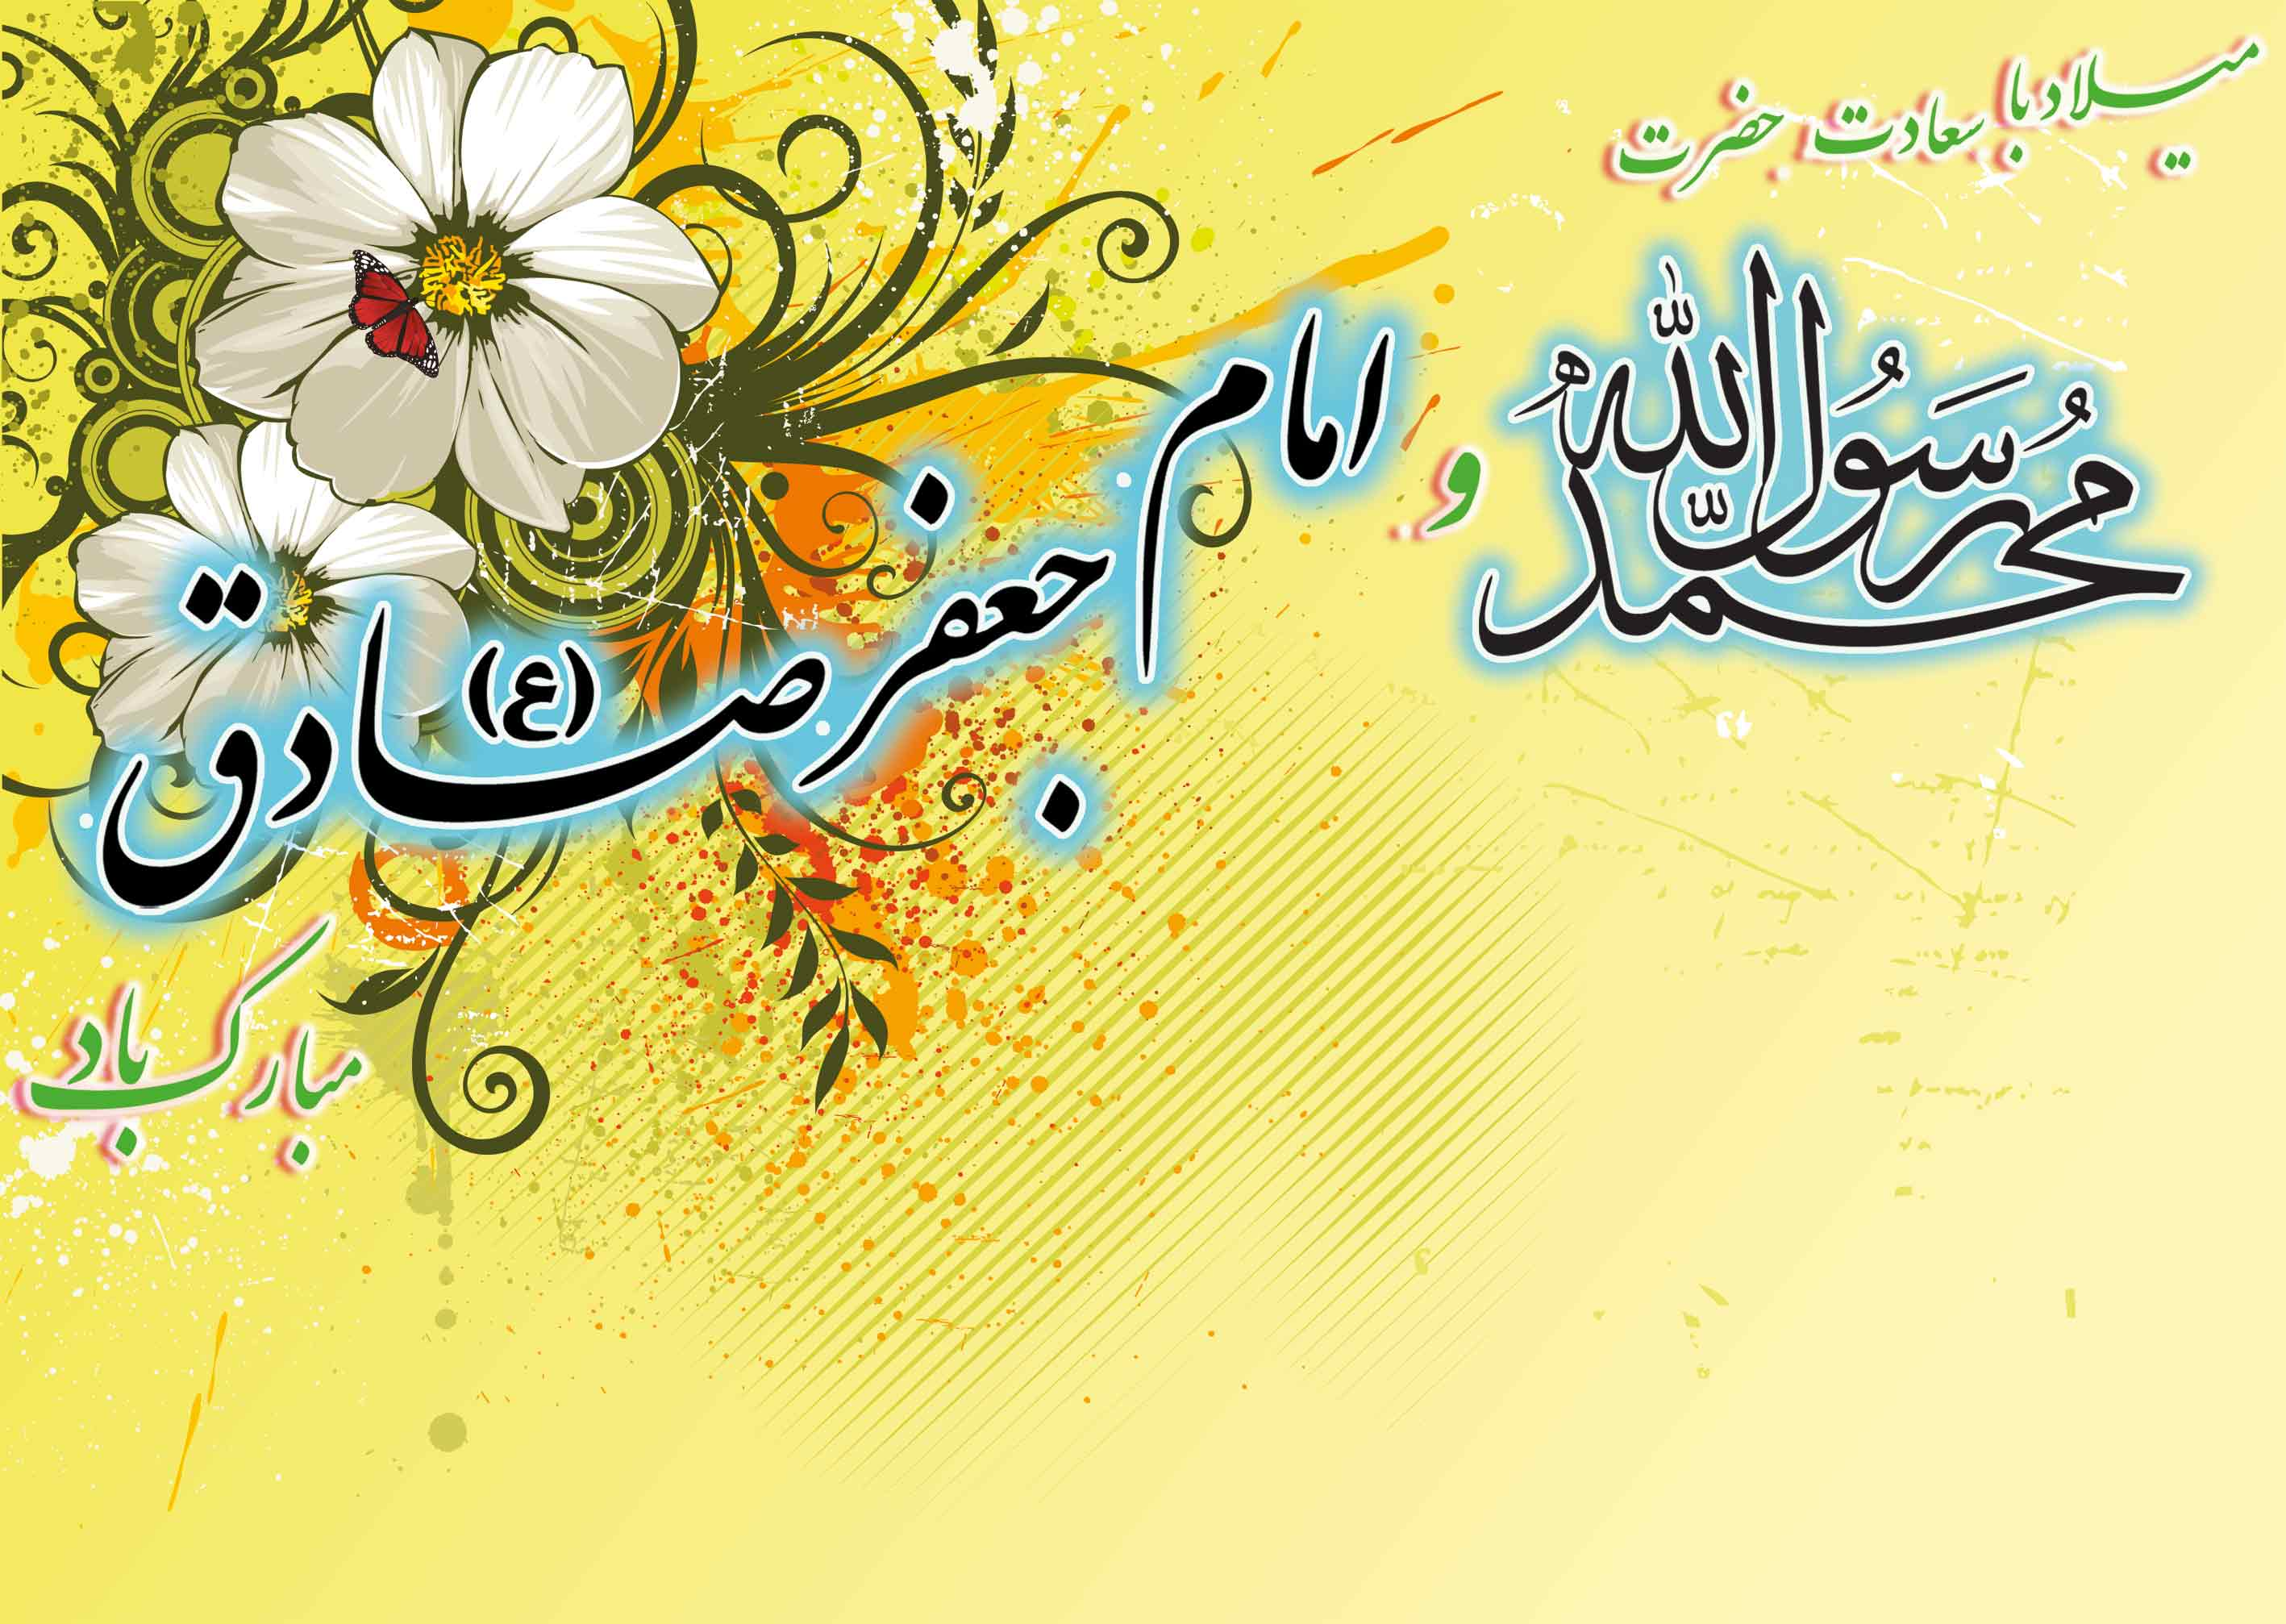 http://rozup.ir/up/tazeeeha/Pictures/milad3.jpg